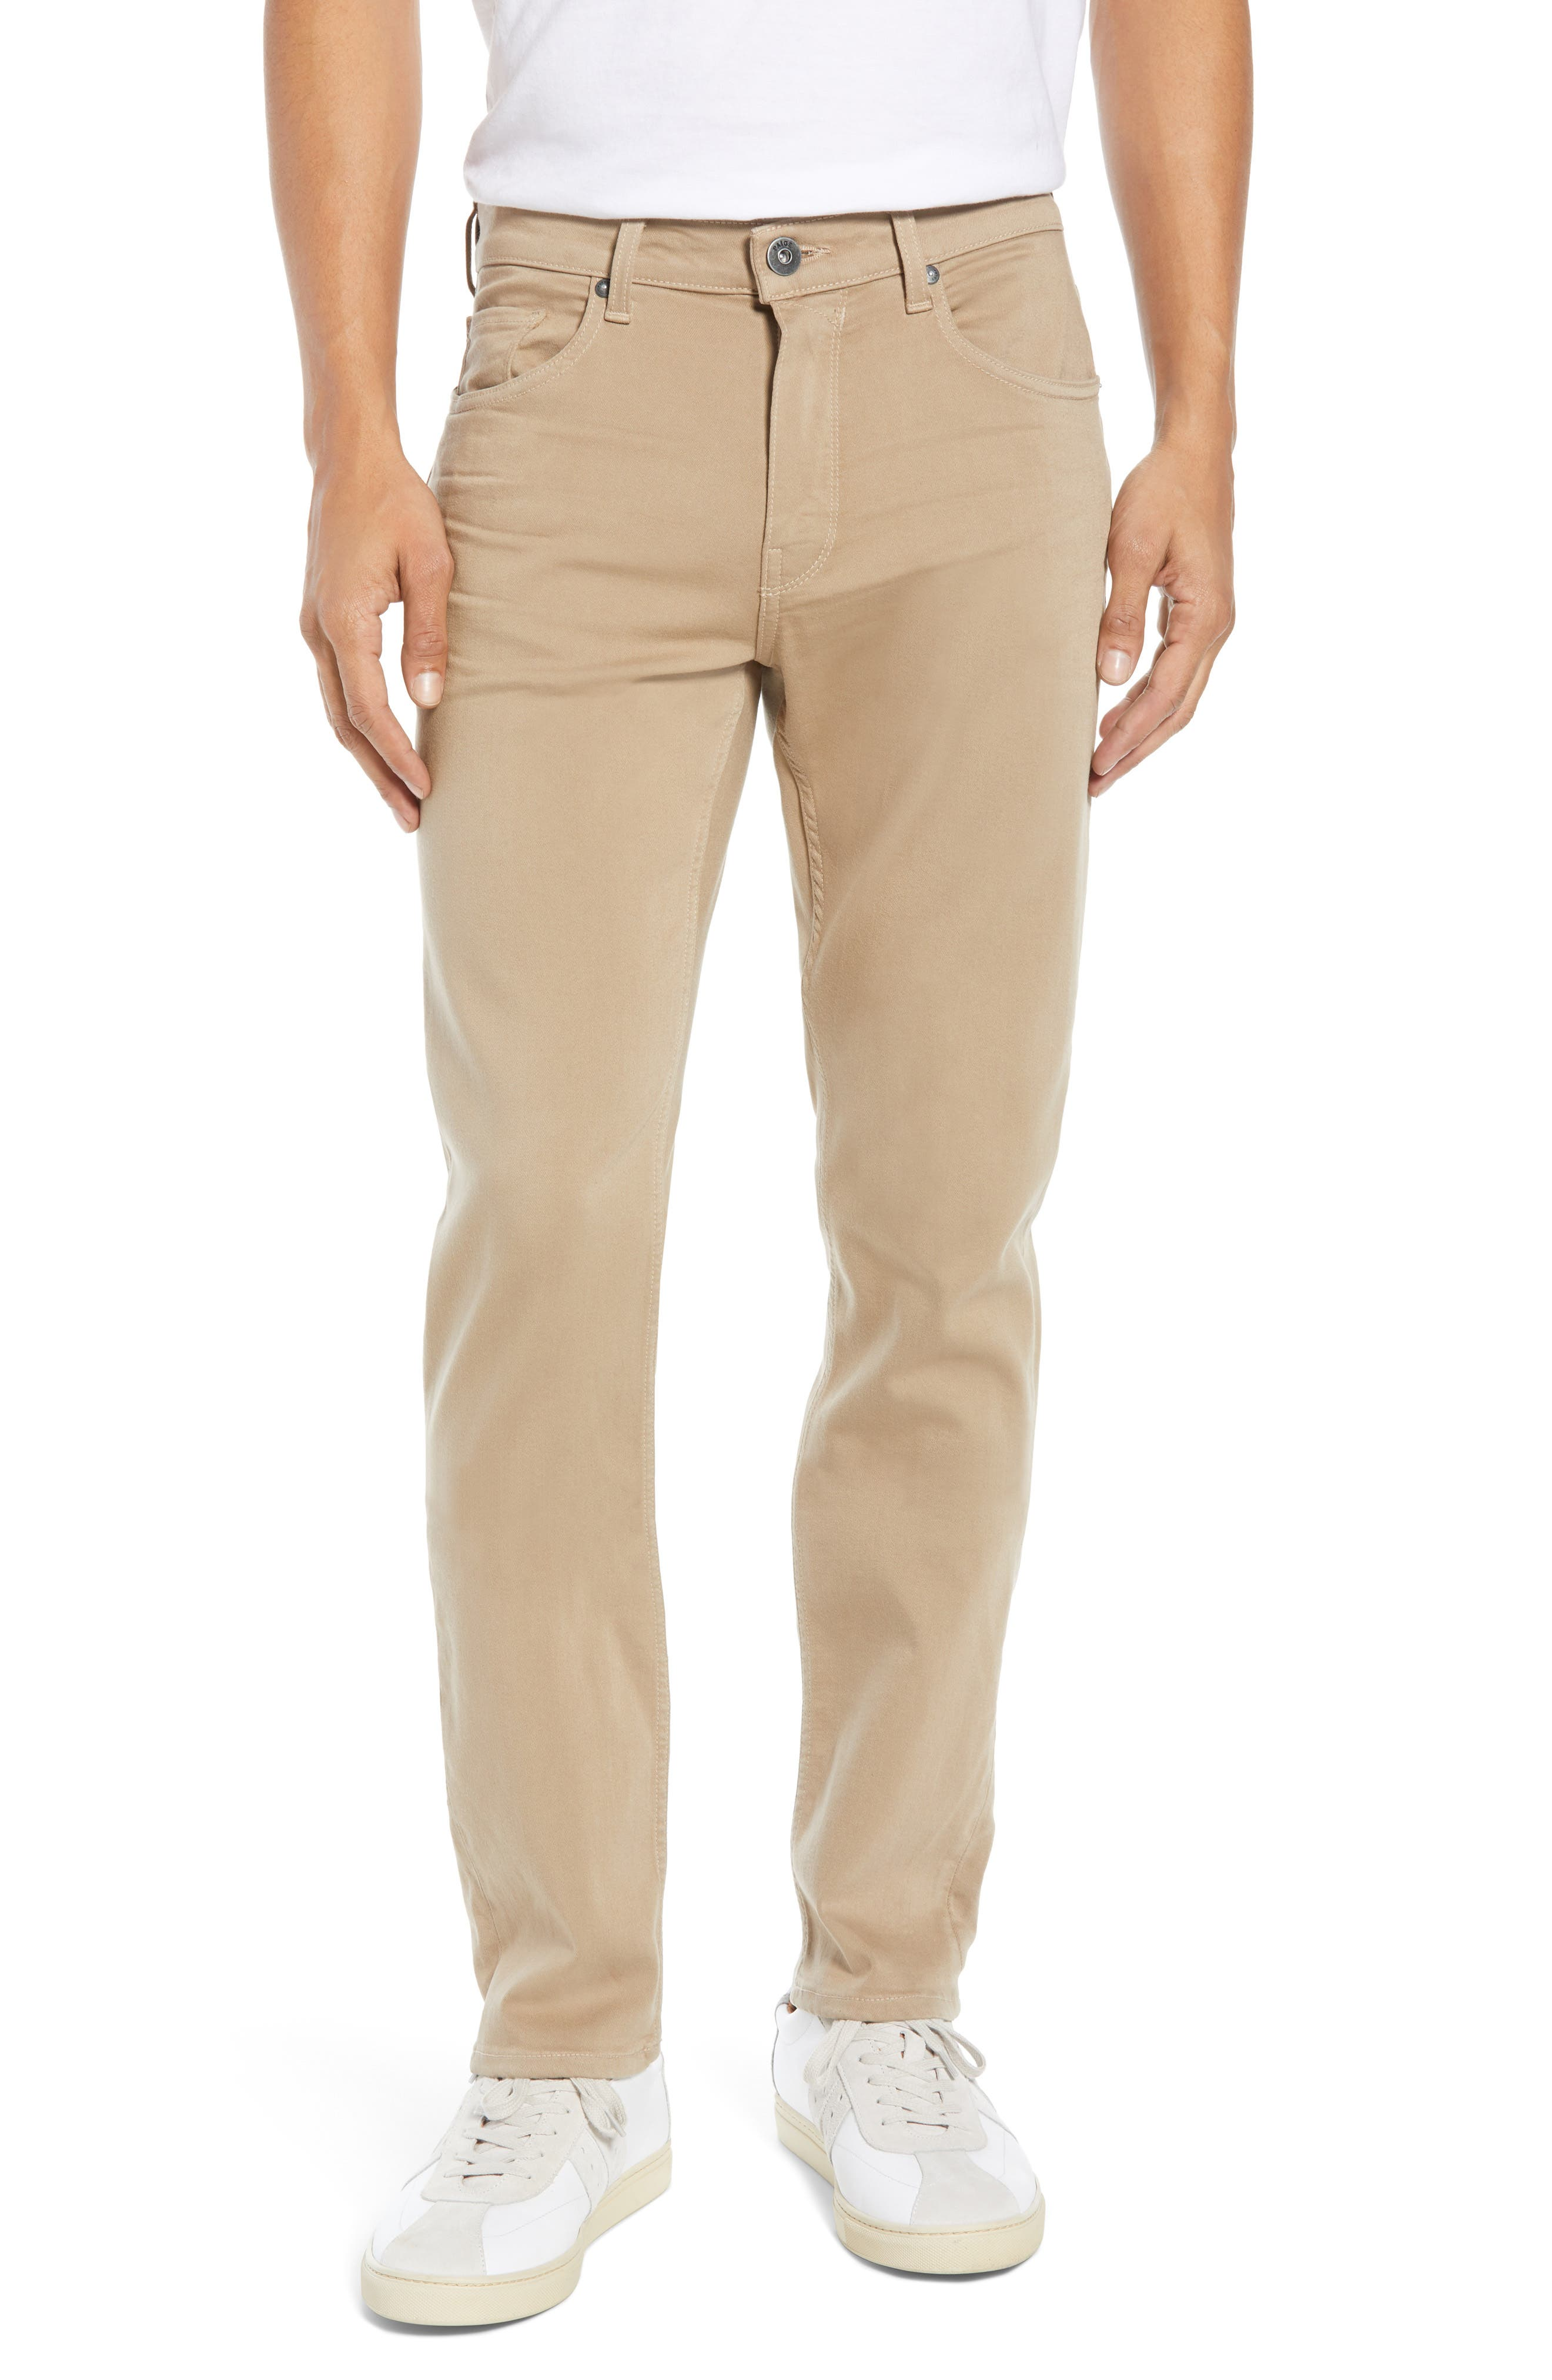 Transcend - Federal Slim Straight Leg Jeans,                             Main thumbnail 1, color,                             BAKED TAN